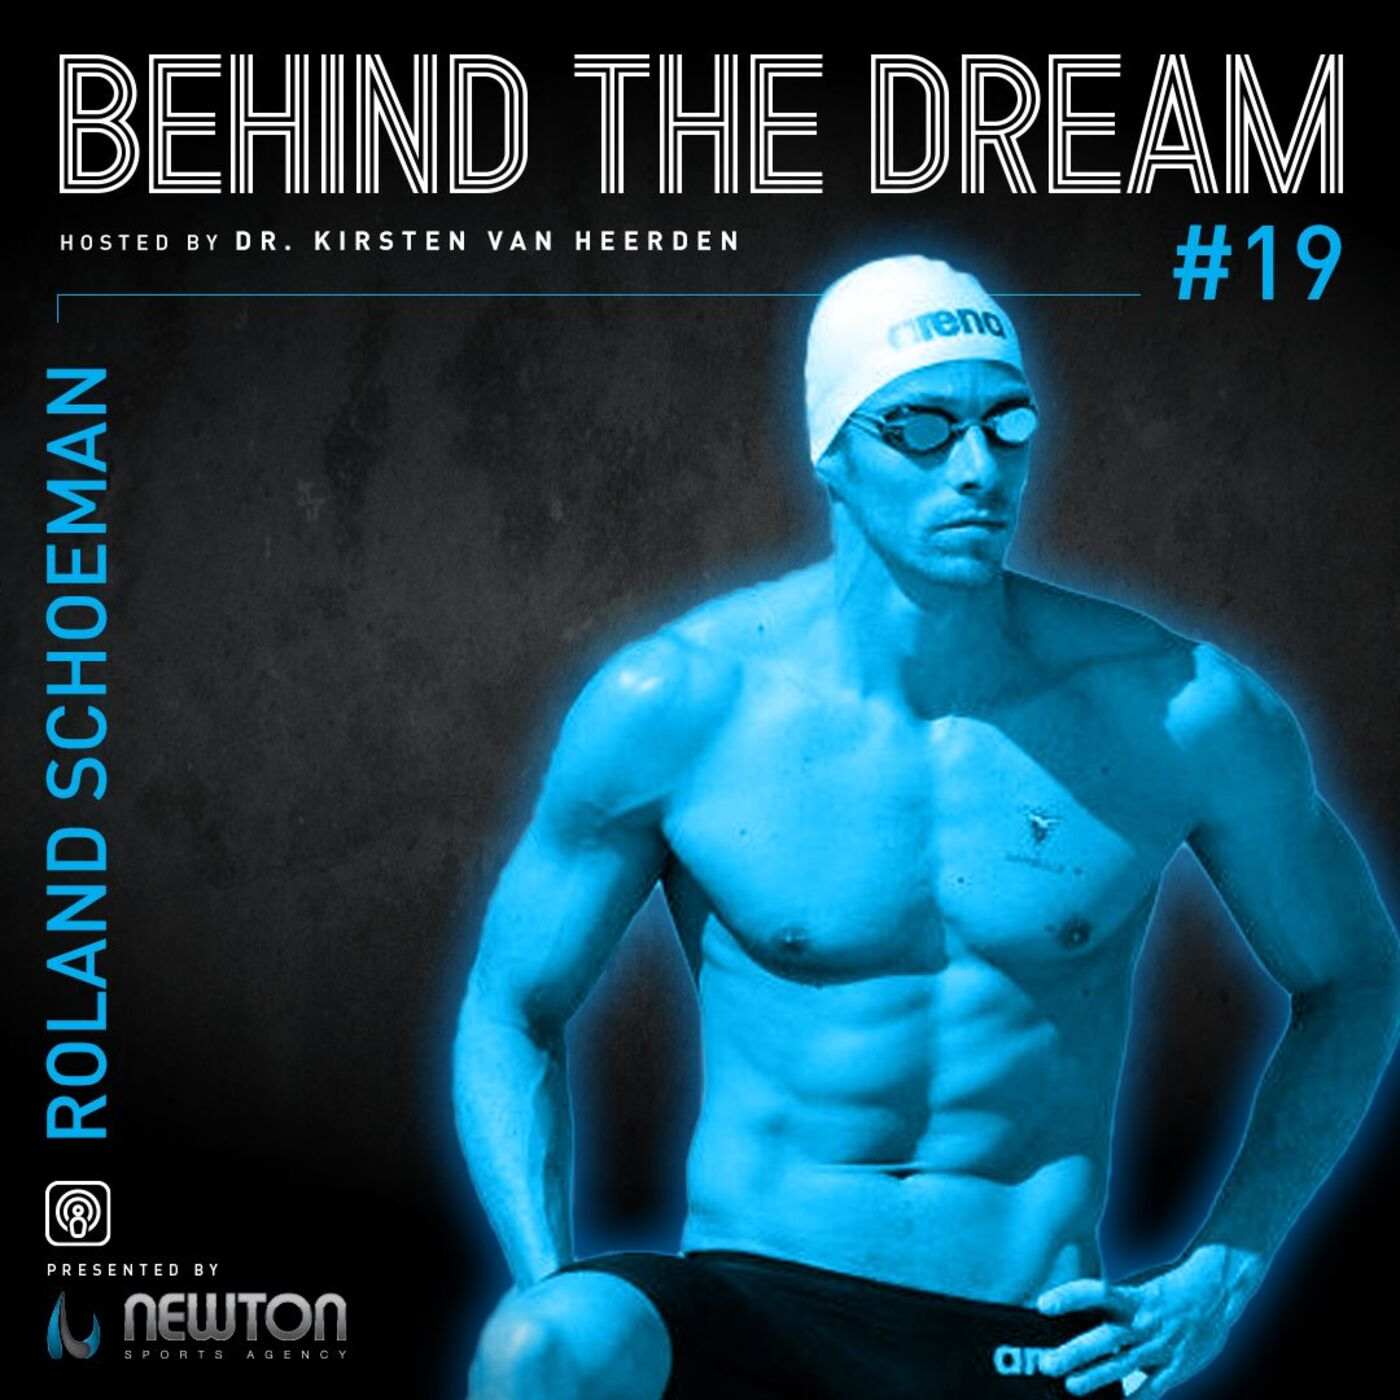 Episode #19: Olympic gold medalist & multiple World Record holder, swimmer Roland Schoeman, talks about finding peace with life and himself